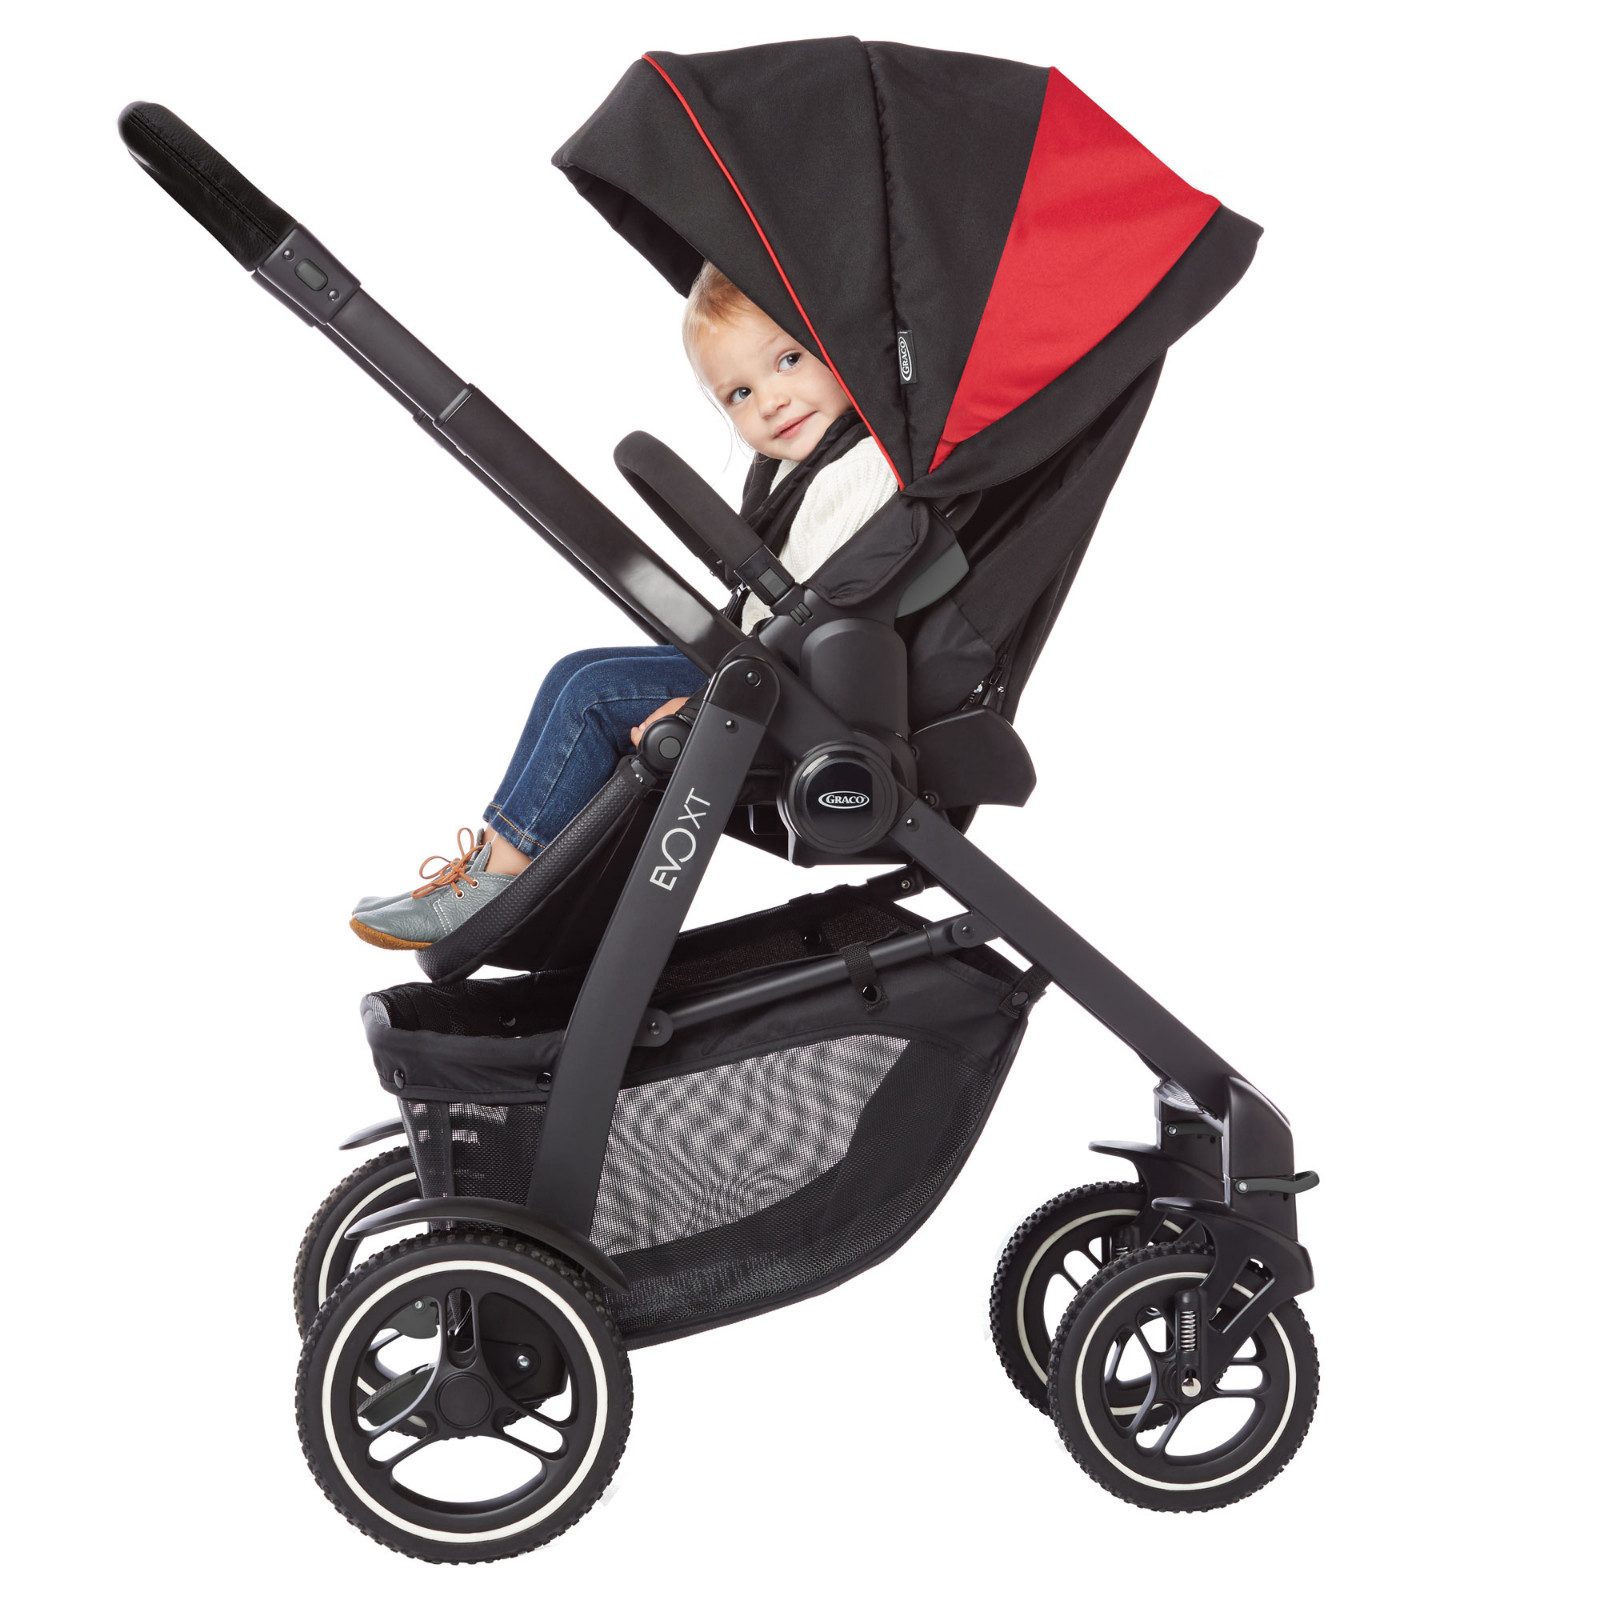 Graco Evo Xt Snugride Travel System Amp Carrycot Black Red Buy At Online4baby